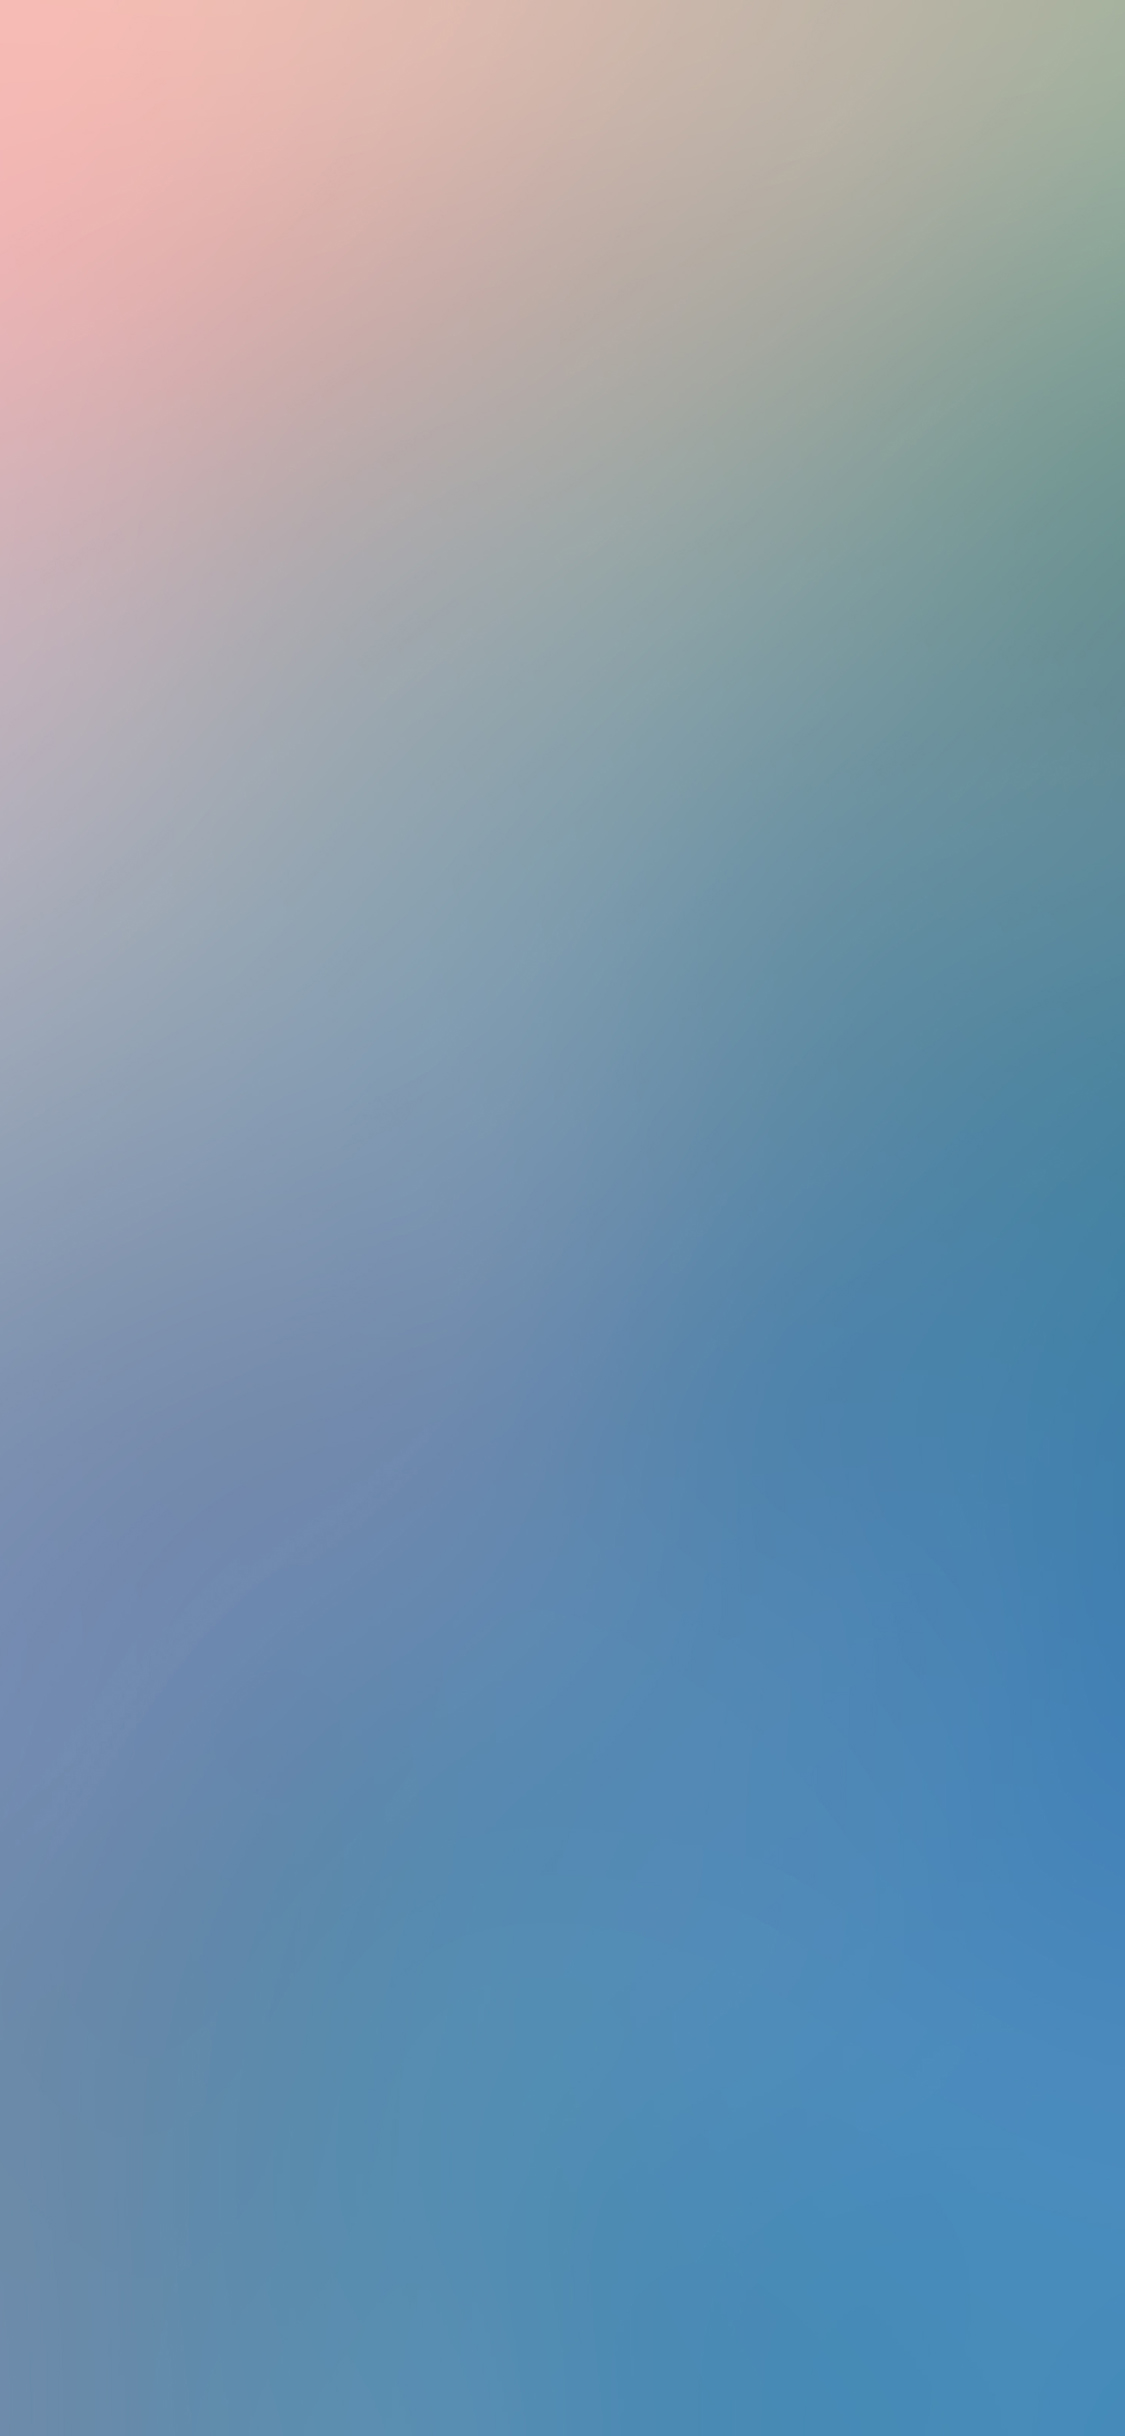 iPhoneXpapers.com-Apple-iPhone-wallpaper-sd73-great-sunny-morning-gradation-blur